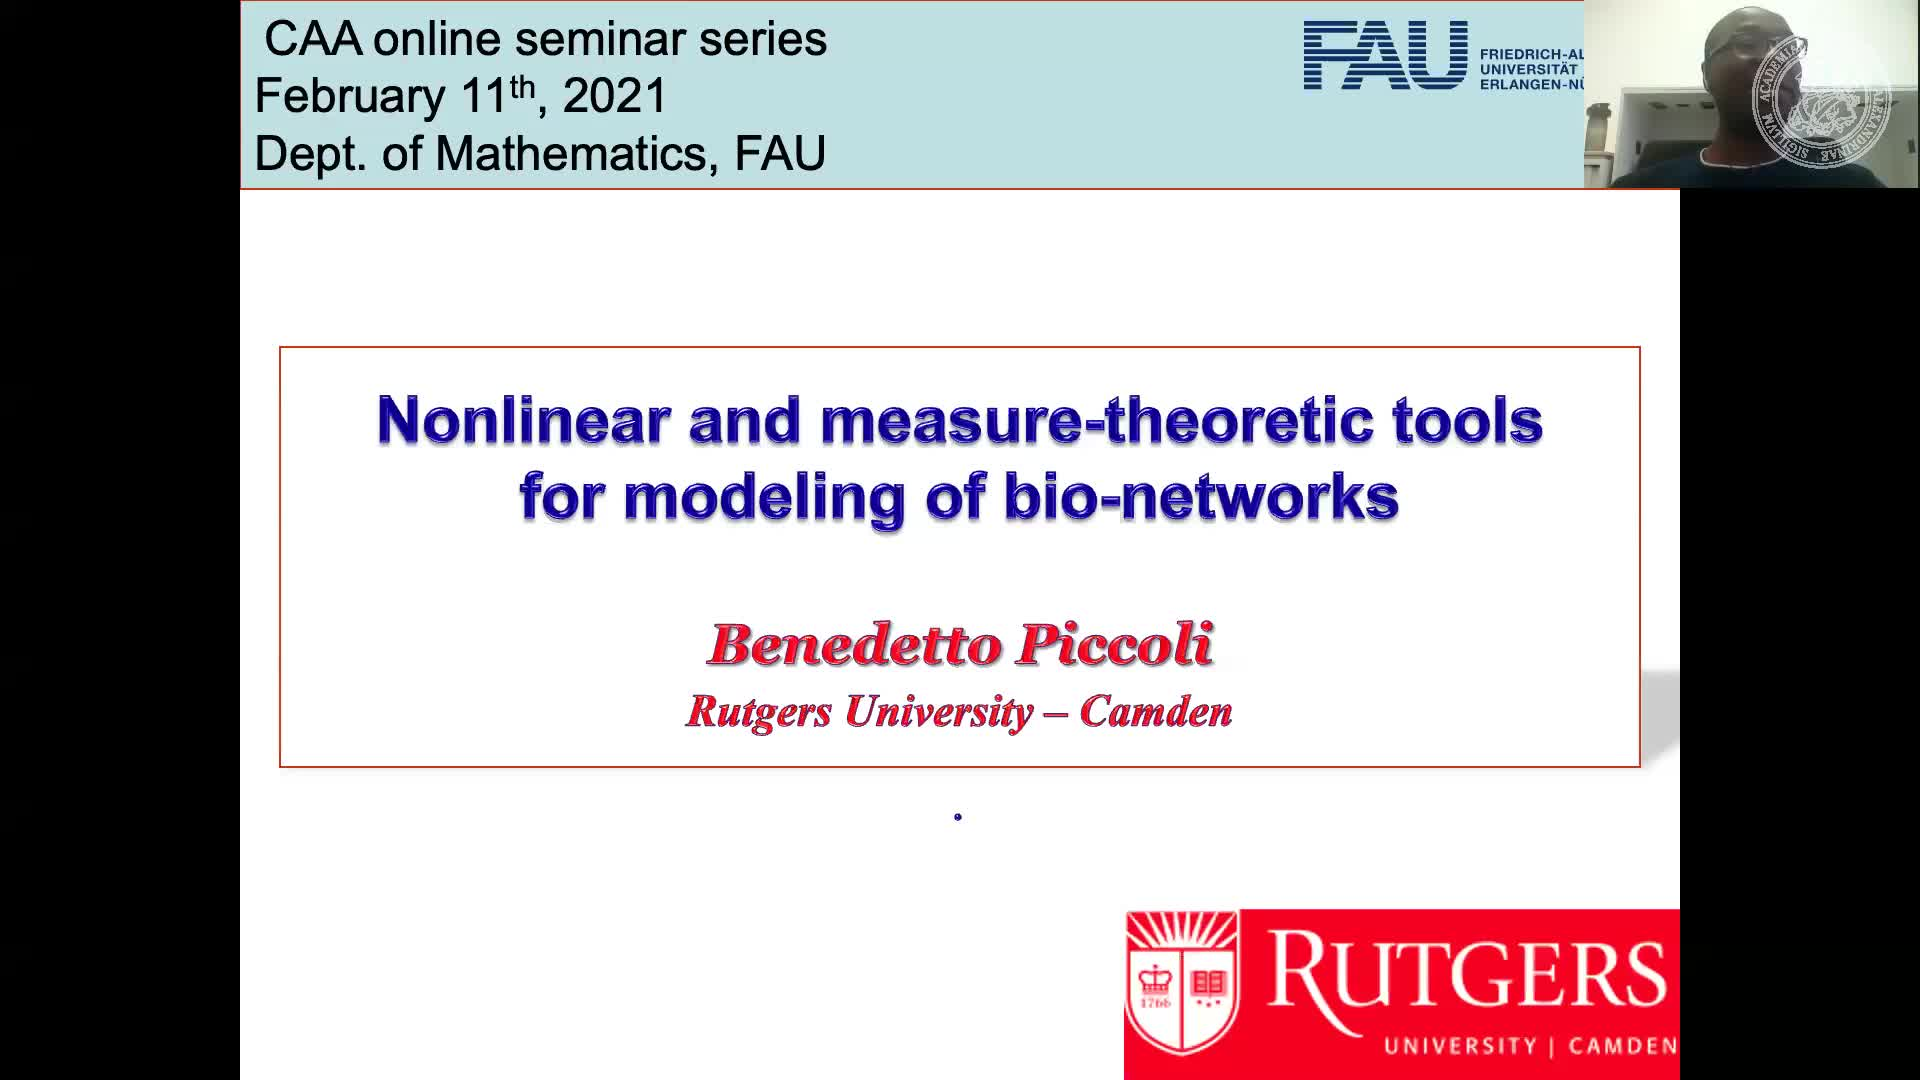 Nonlinear and measure-theoretic methods for large biological networks (Benedetto Piccoli, Rutgers University, USA) preview image